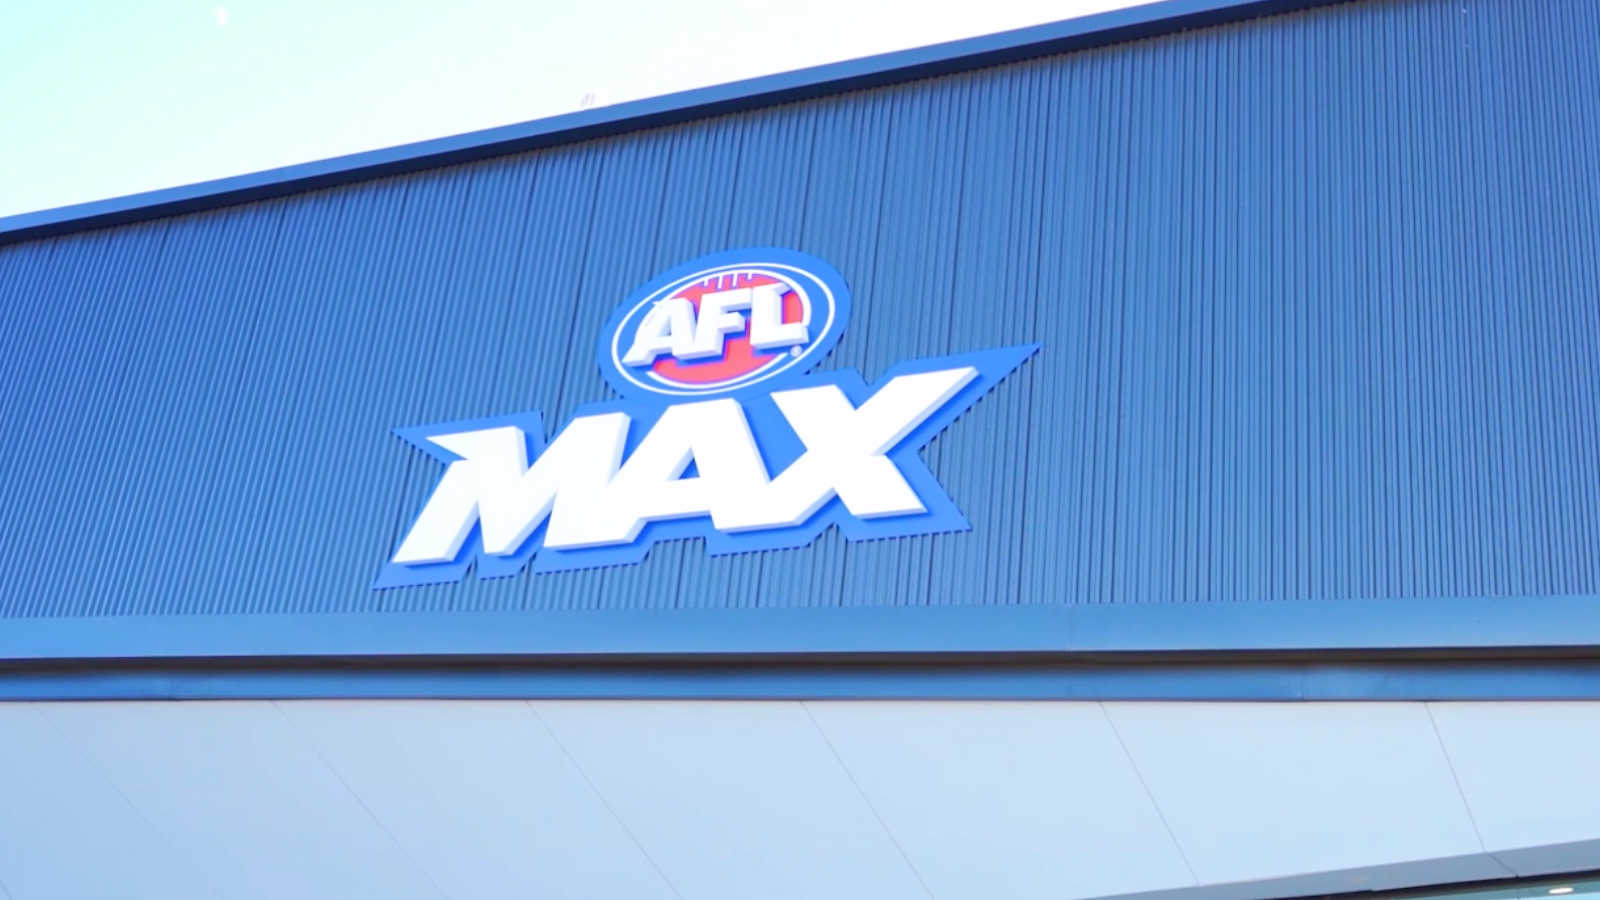 AFL Max logo on building